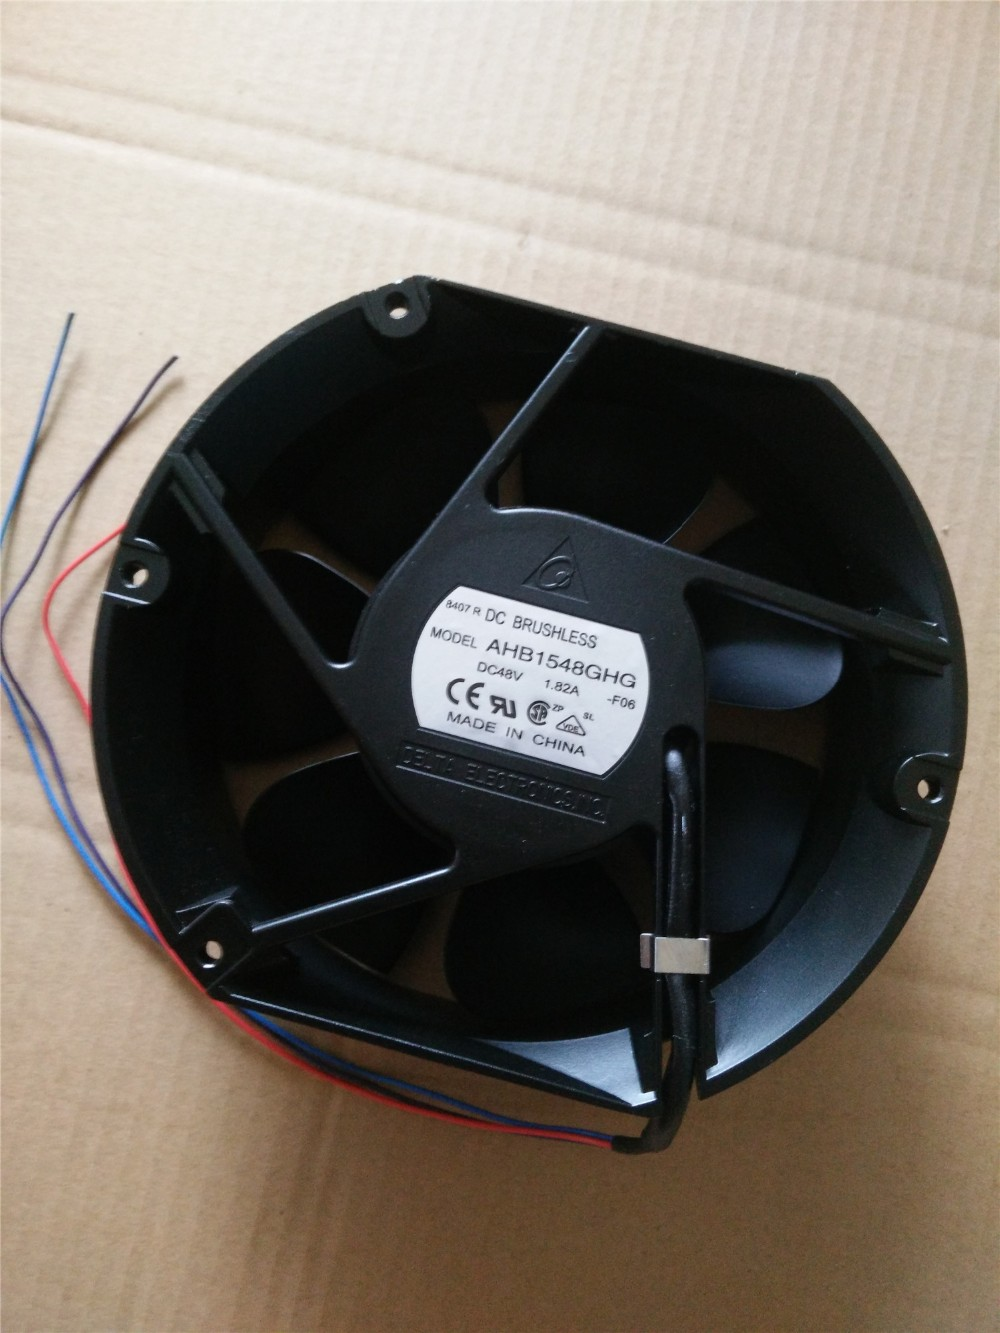 Delta 17251 17CM * 15cm AHB1548GHG 48V 1.82A 3LINES Cooling Fan freeshipping a2175hbt ac fan 171x151x5 mm 17cm 17251 230vac 50 60hz